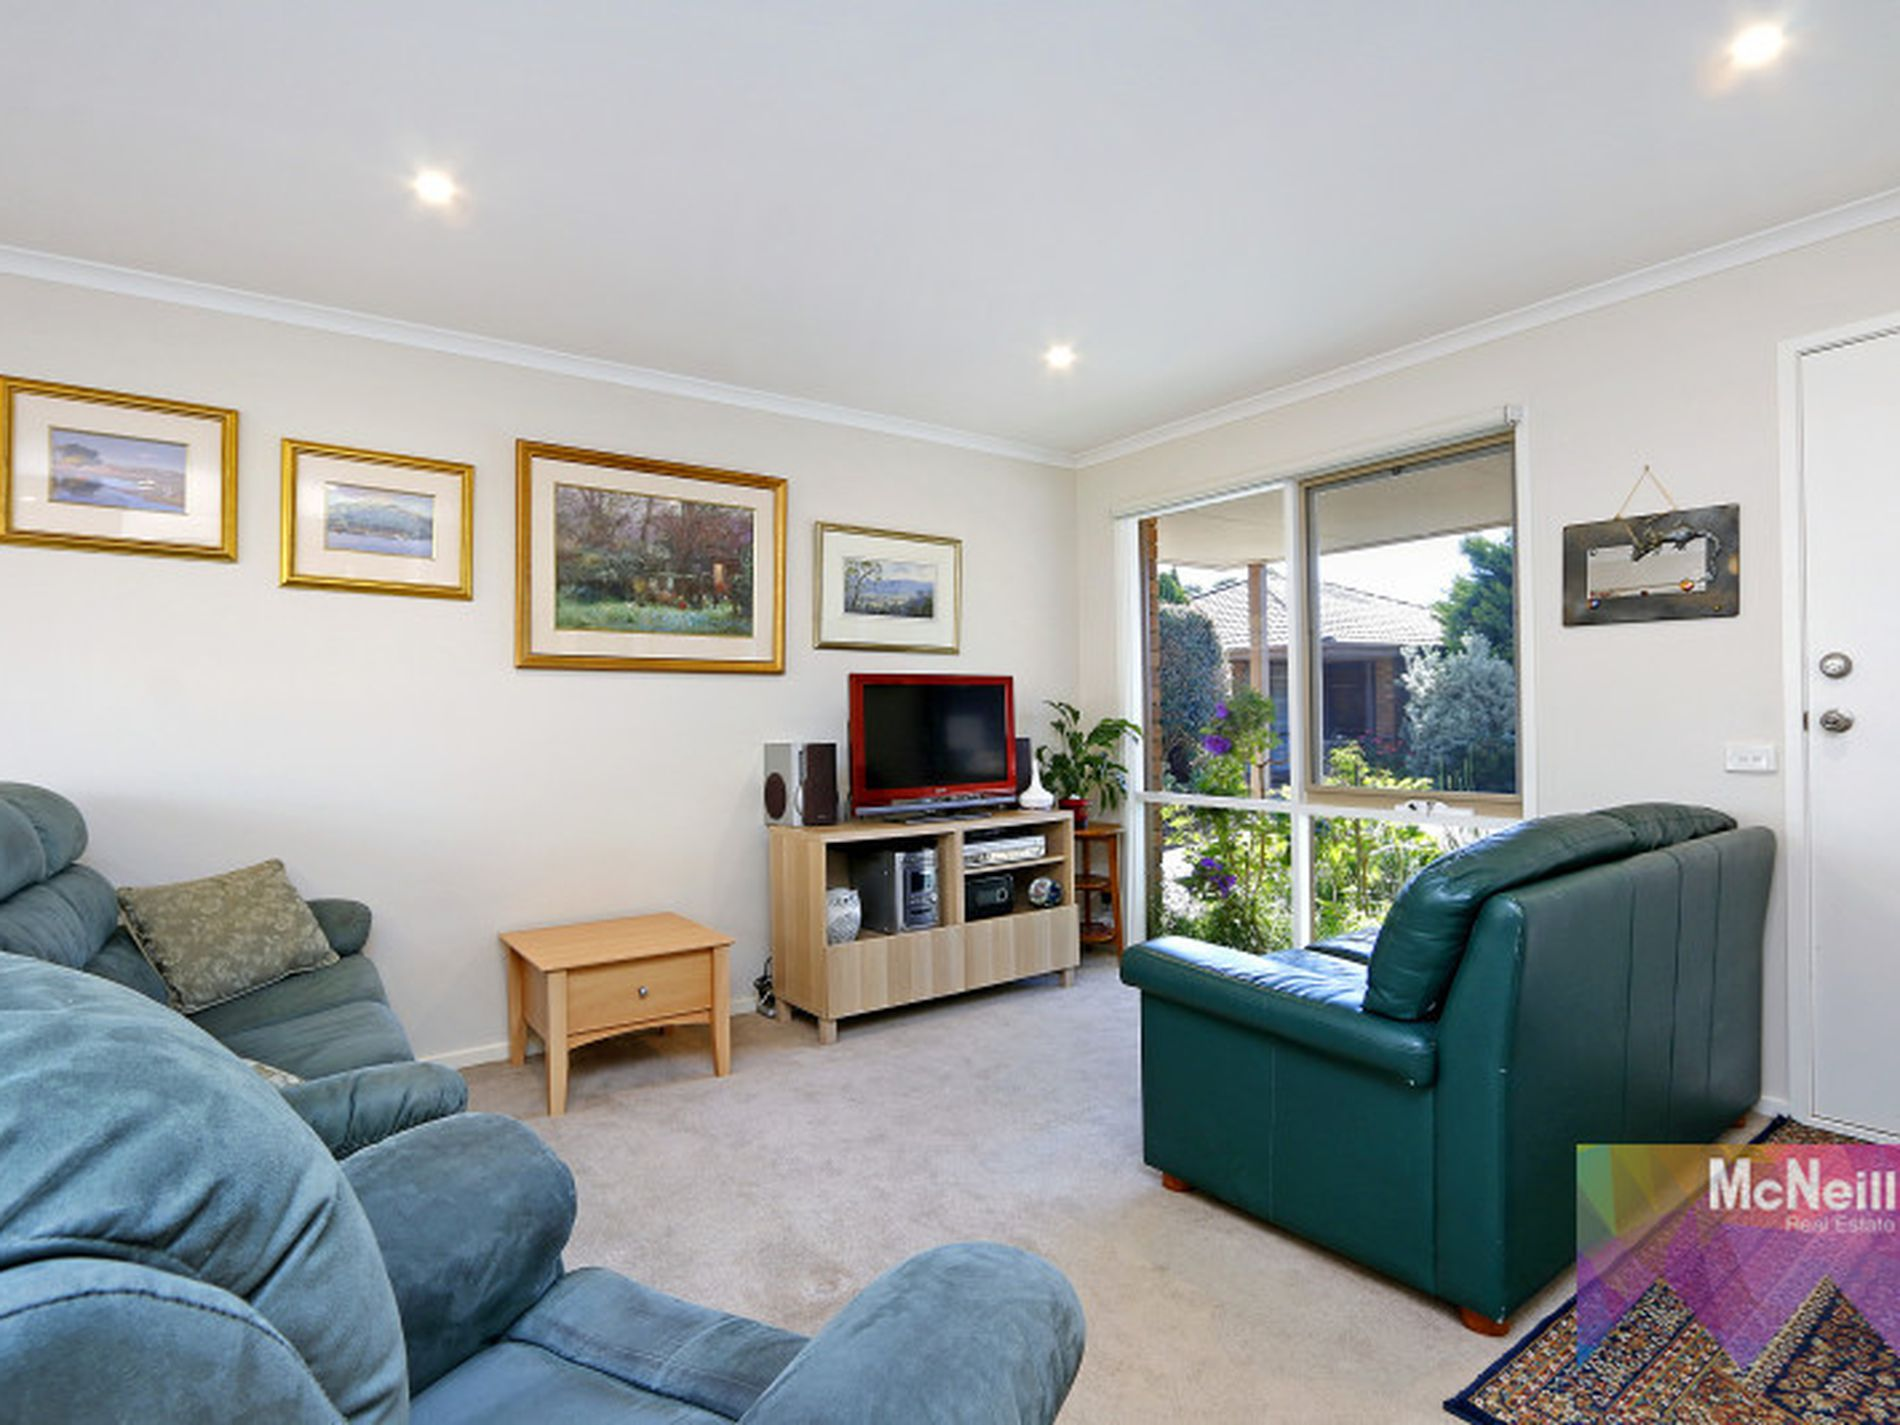 5 / 7 Nicholas Court, Hastings